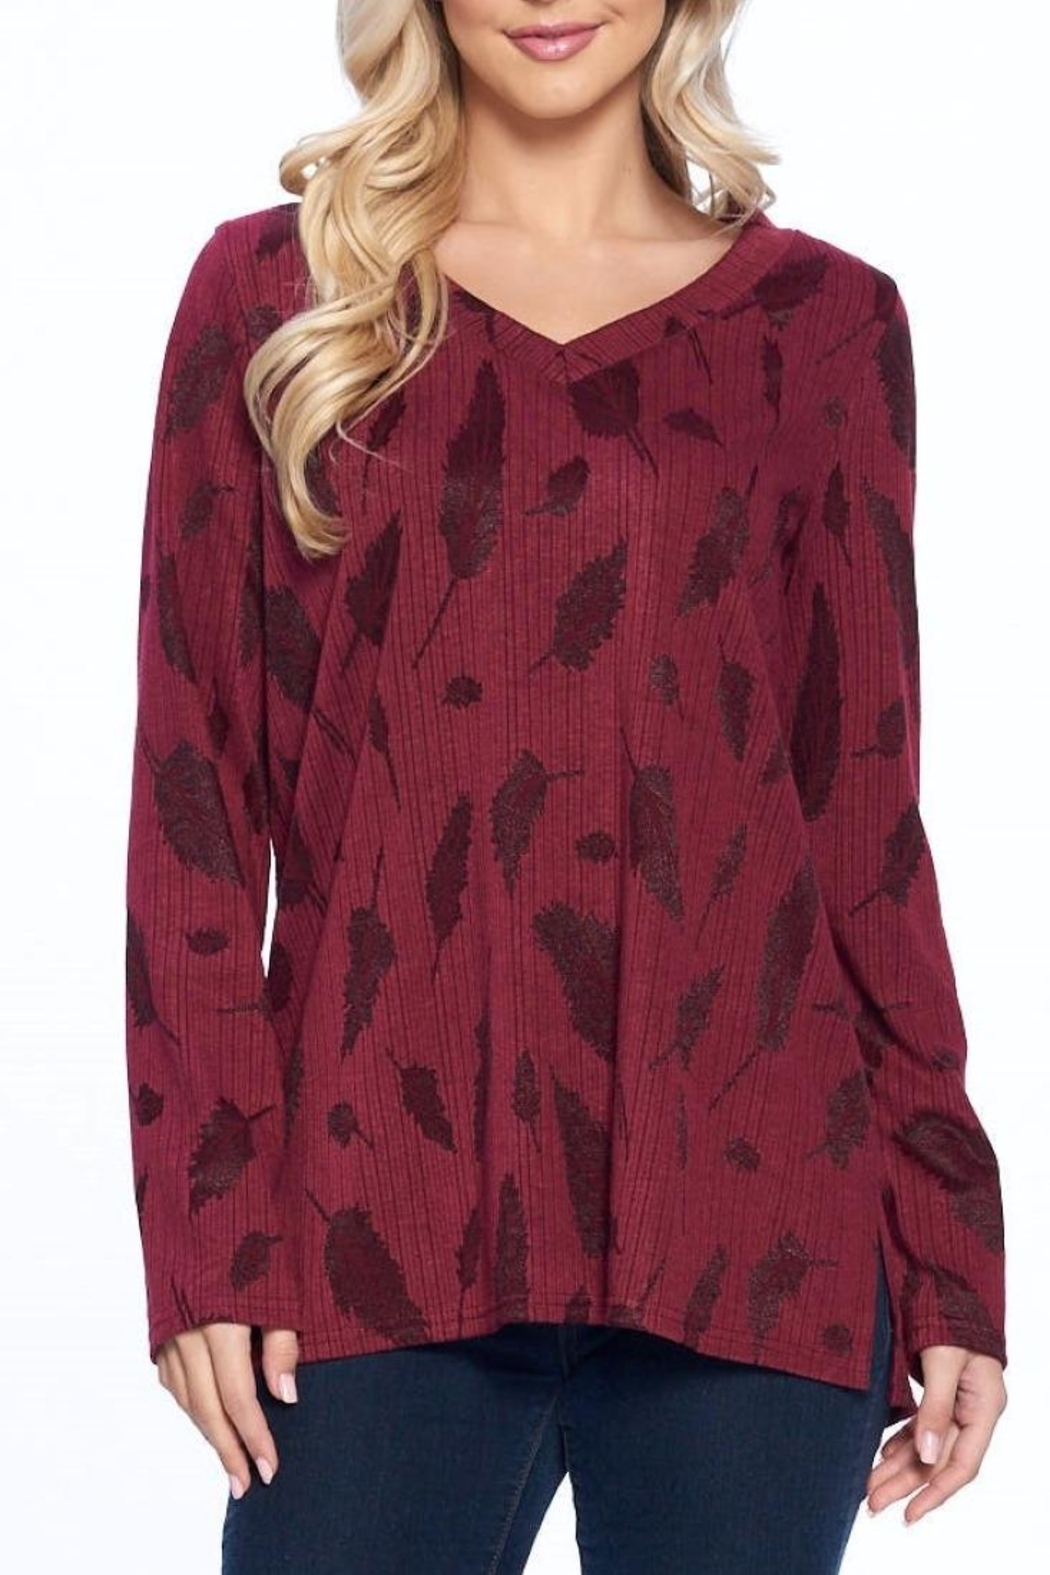 Aryeh Wine V-Neck Knit Top - Main Image